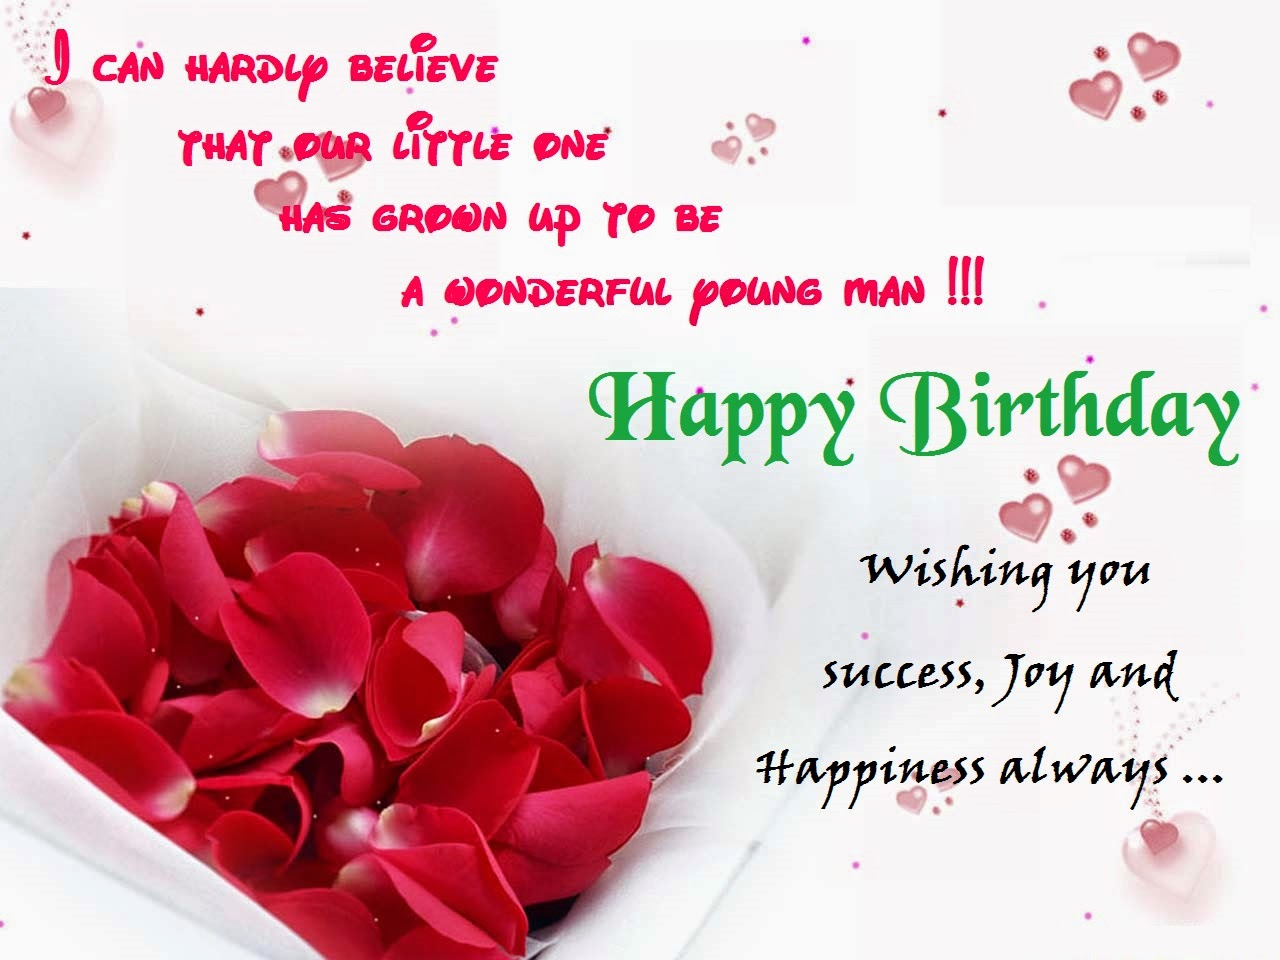 Happy birthday dear friend card Happy Birthday Pinterest